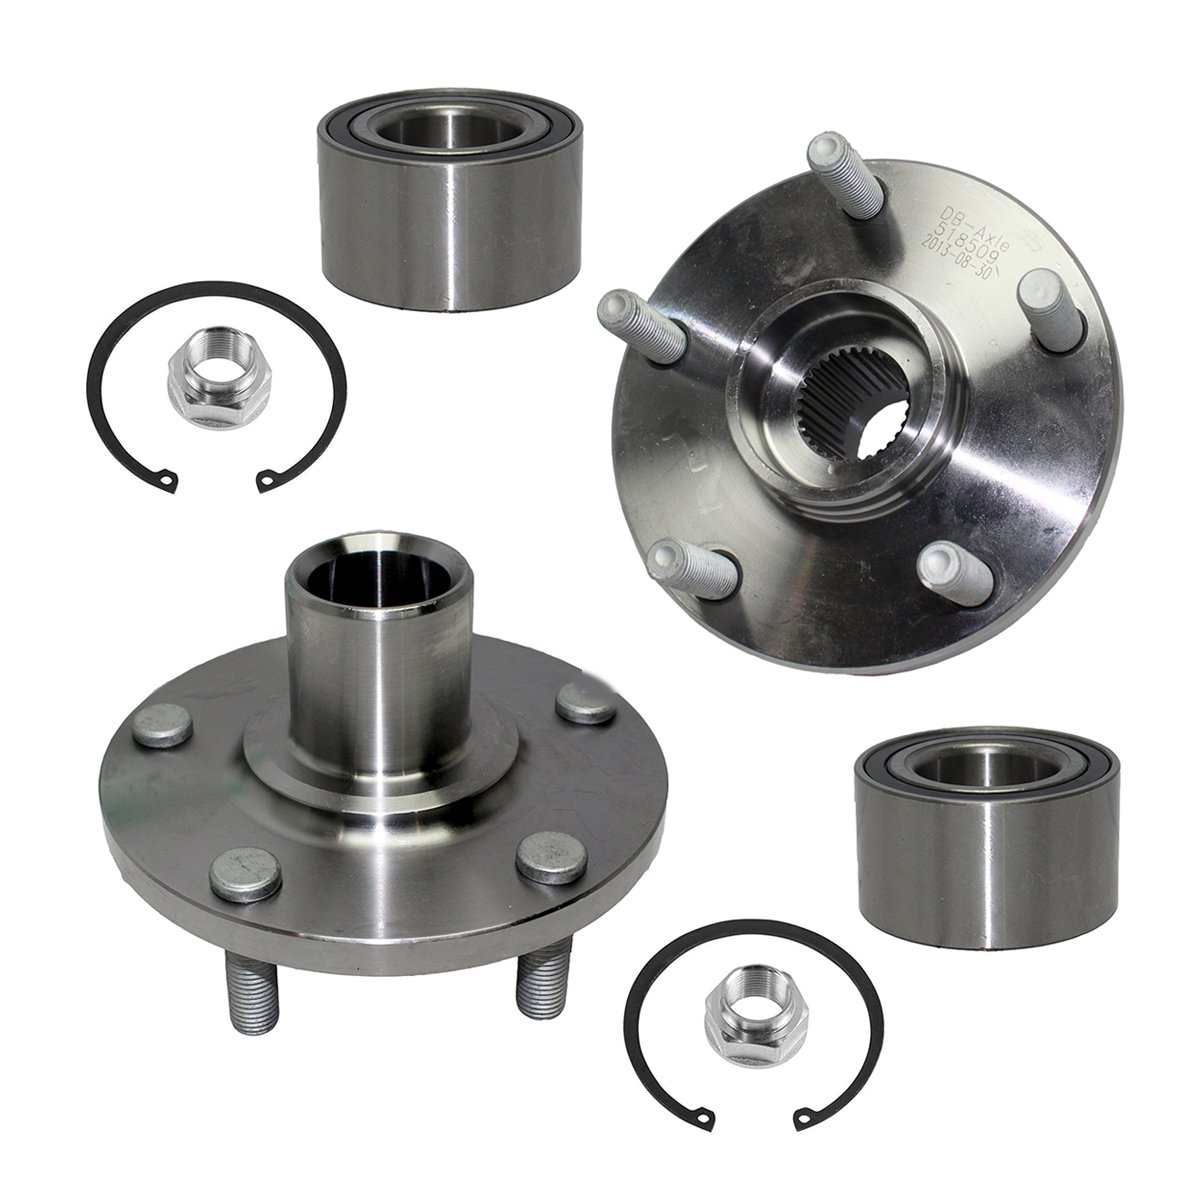 Detroit Axle - Front Wheel Bearing & Hub Assembly Left & Right Side for  92-03 Lexus ES300 - [92-03 Camry V6] - 95-04 Avalon - [98-03 Sienna] -  99-03